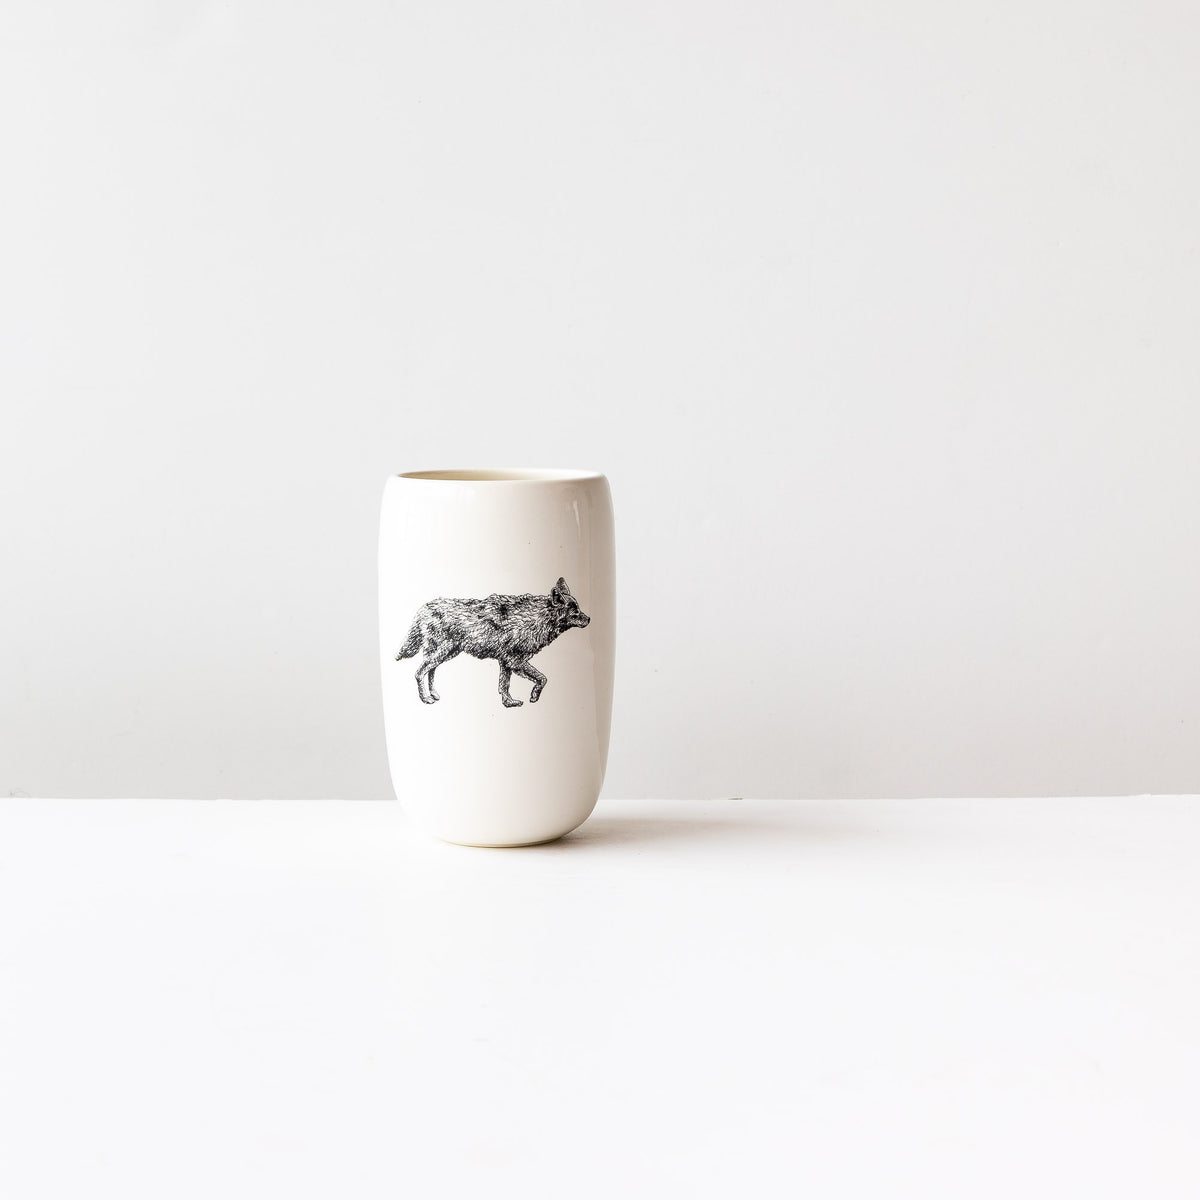 Coyote - Handmade Porcelain Beer Tumbler / Glass - Sold by Chic & Basta